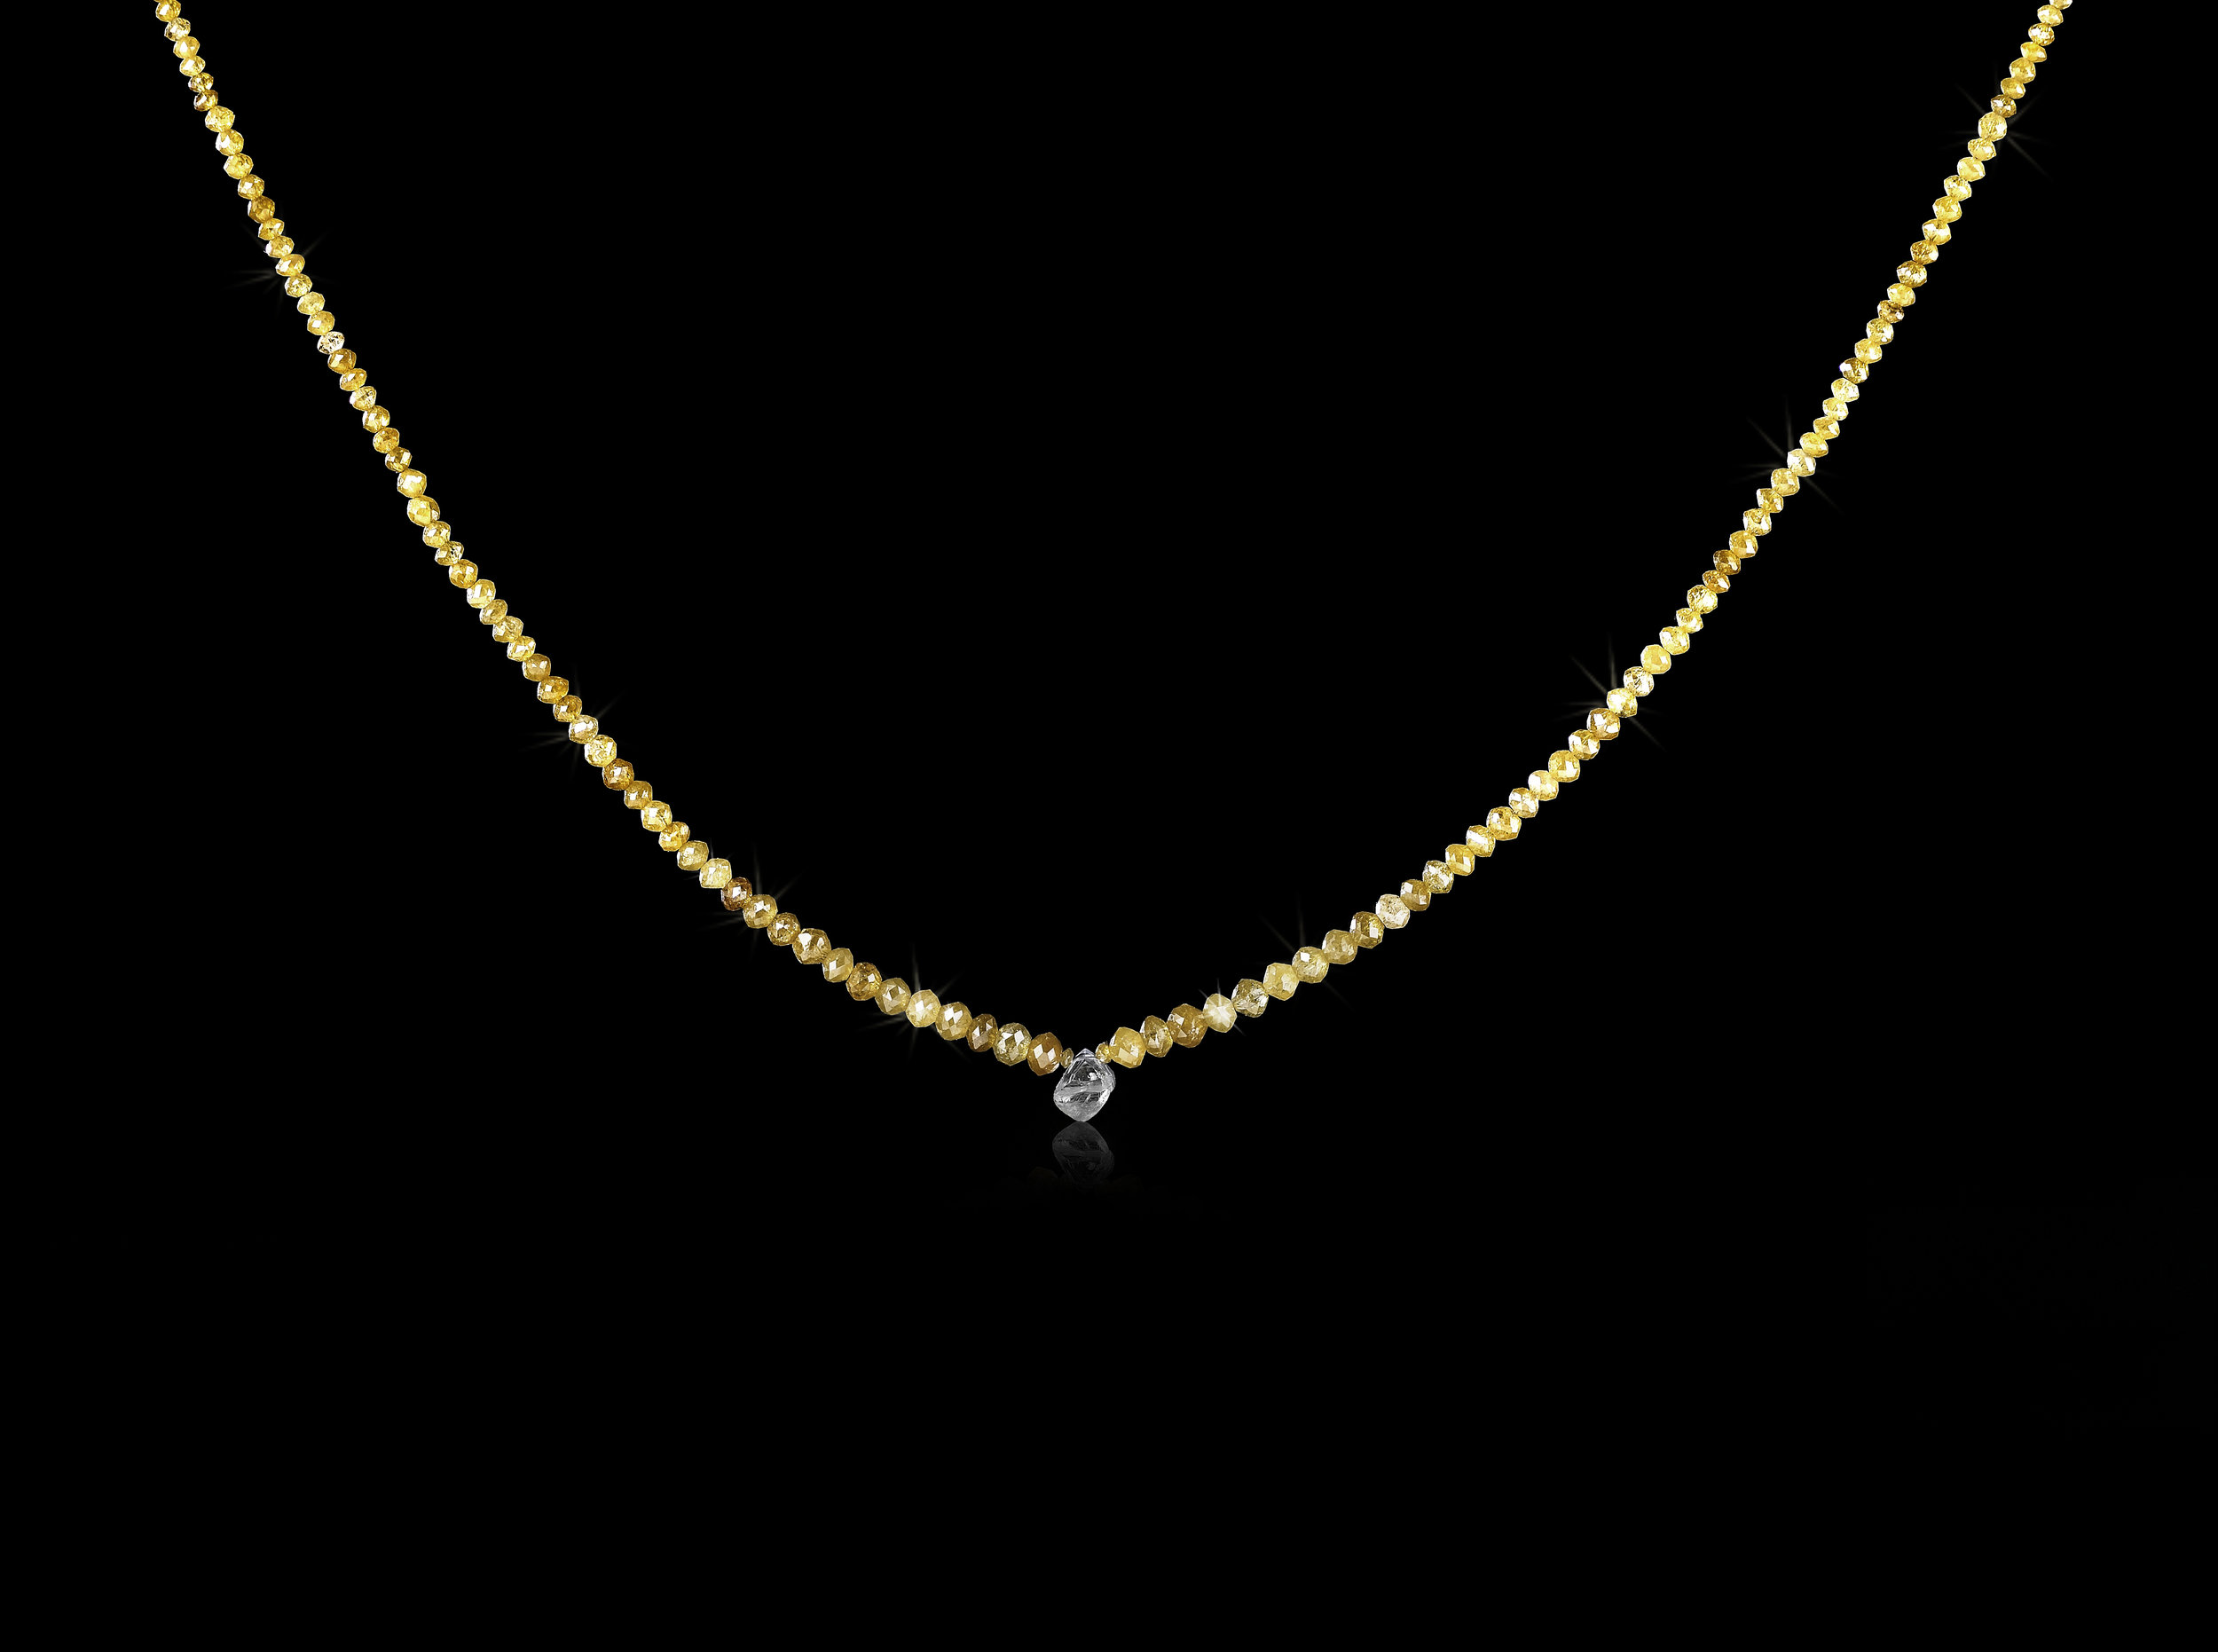 1.13 ct. rough diamond & 20.09 ct. yellow facetted diamonds in a collier